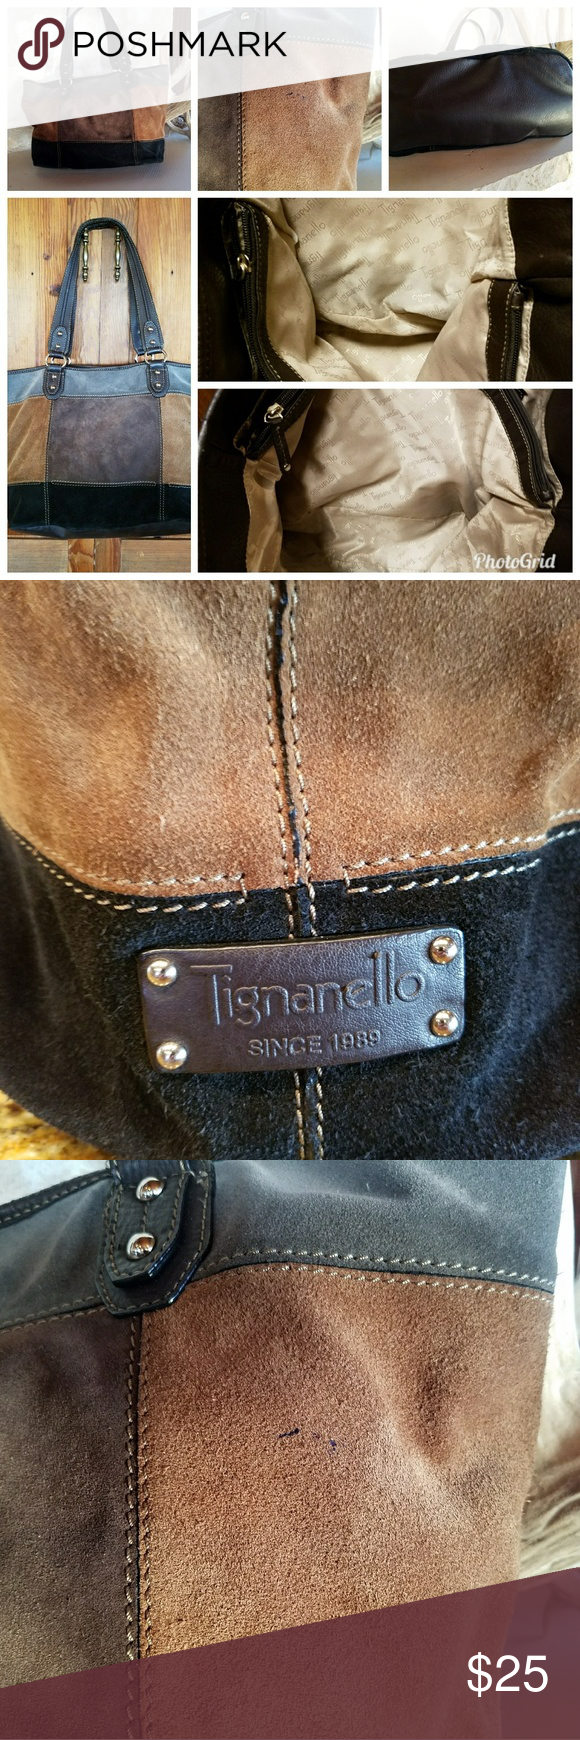 Tignanello tote Black/Brown/Gray/Camel suede tote.  Very roomy. Center zip section with pockets on either side. Gently used except for minor speck as seen in close-up. Tignanello Bags Totes